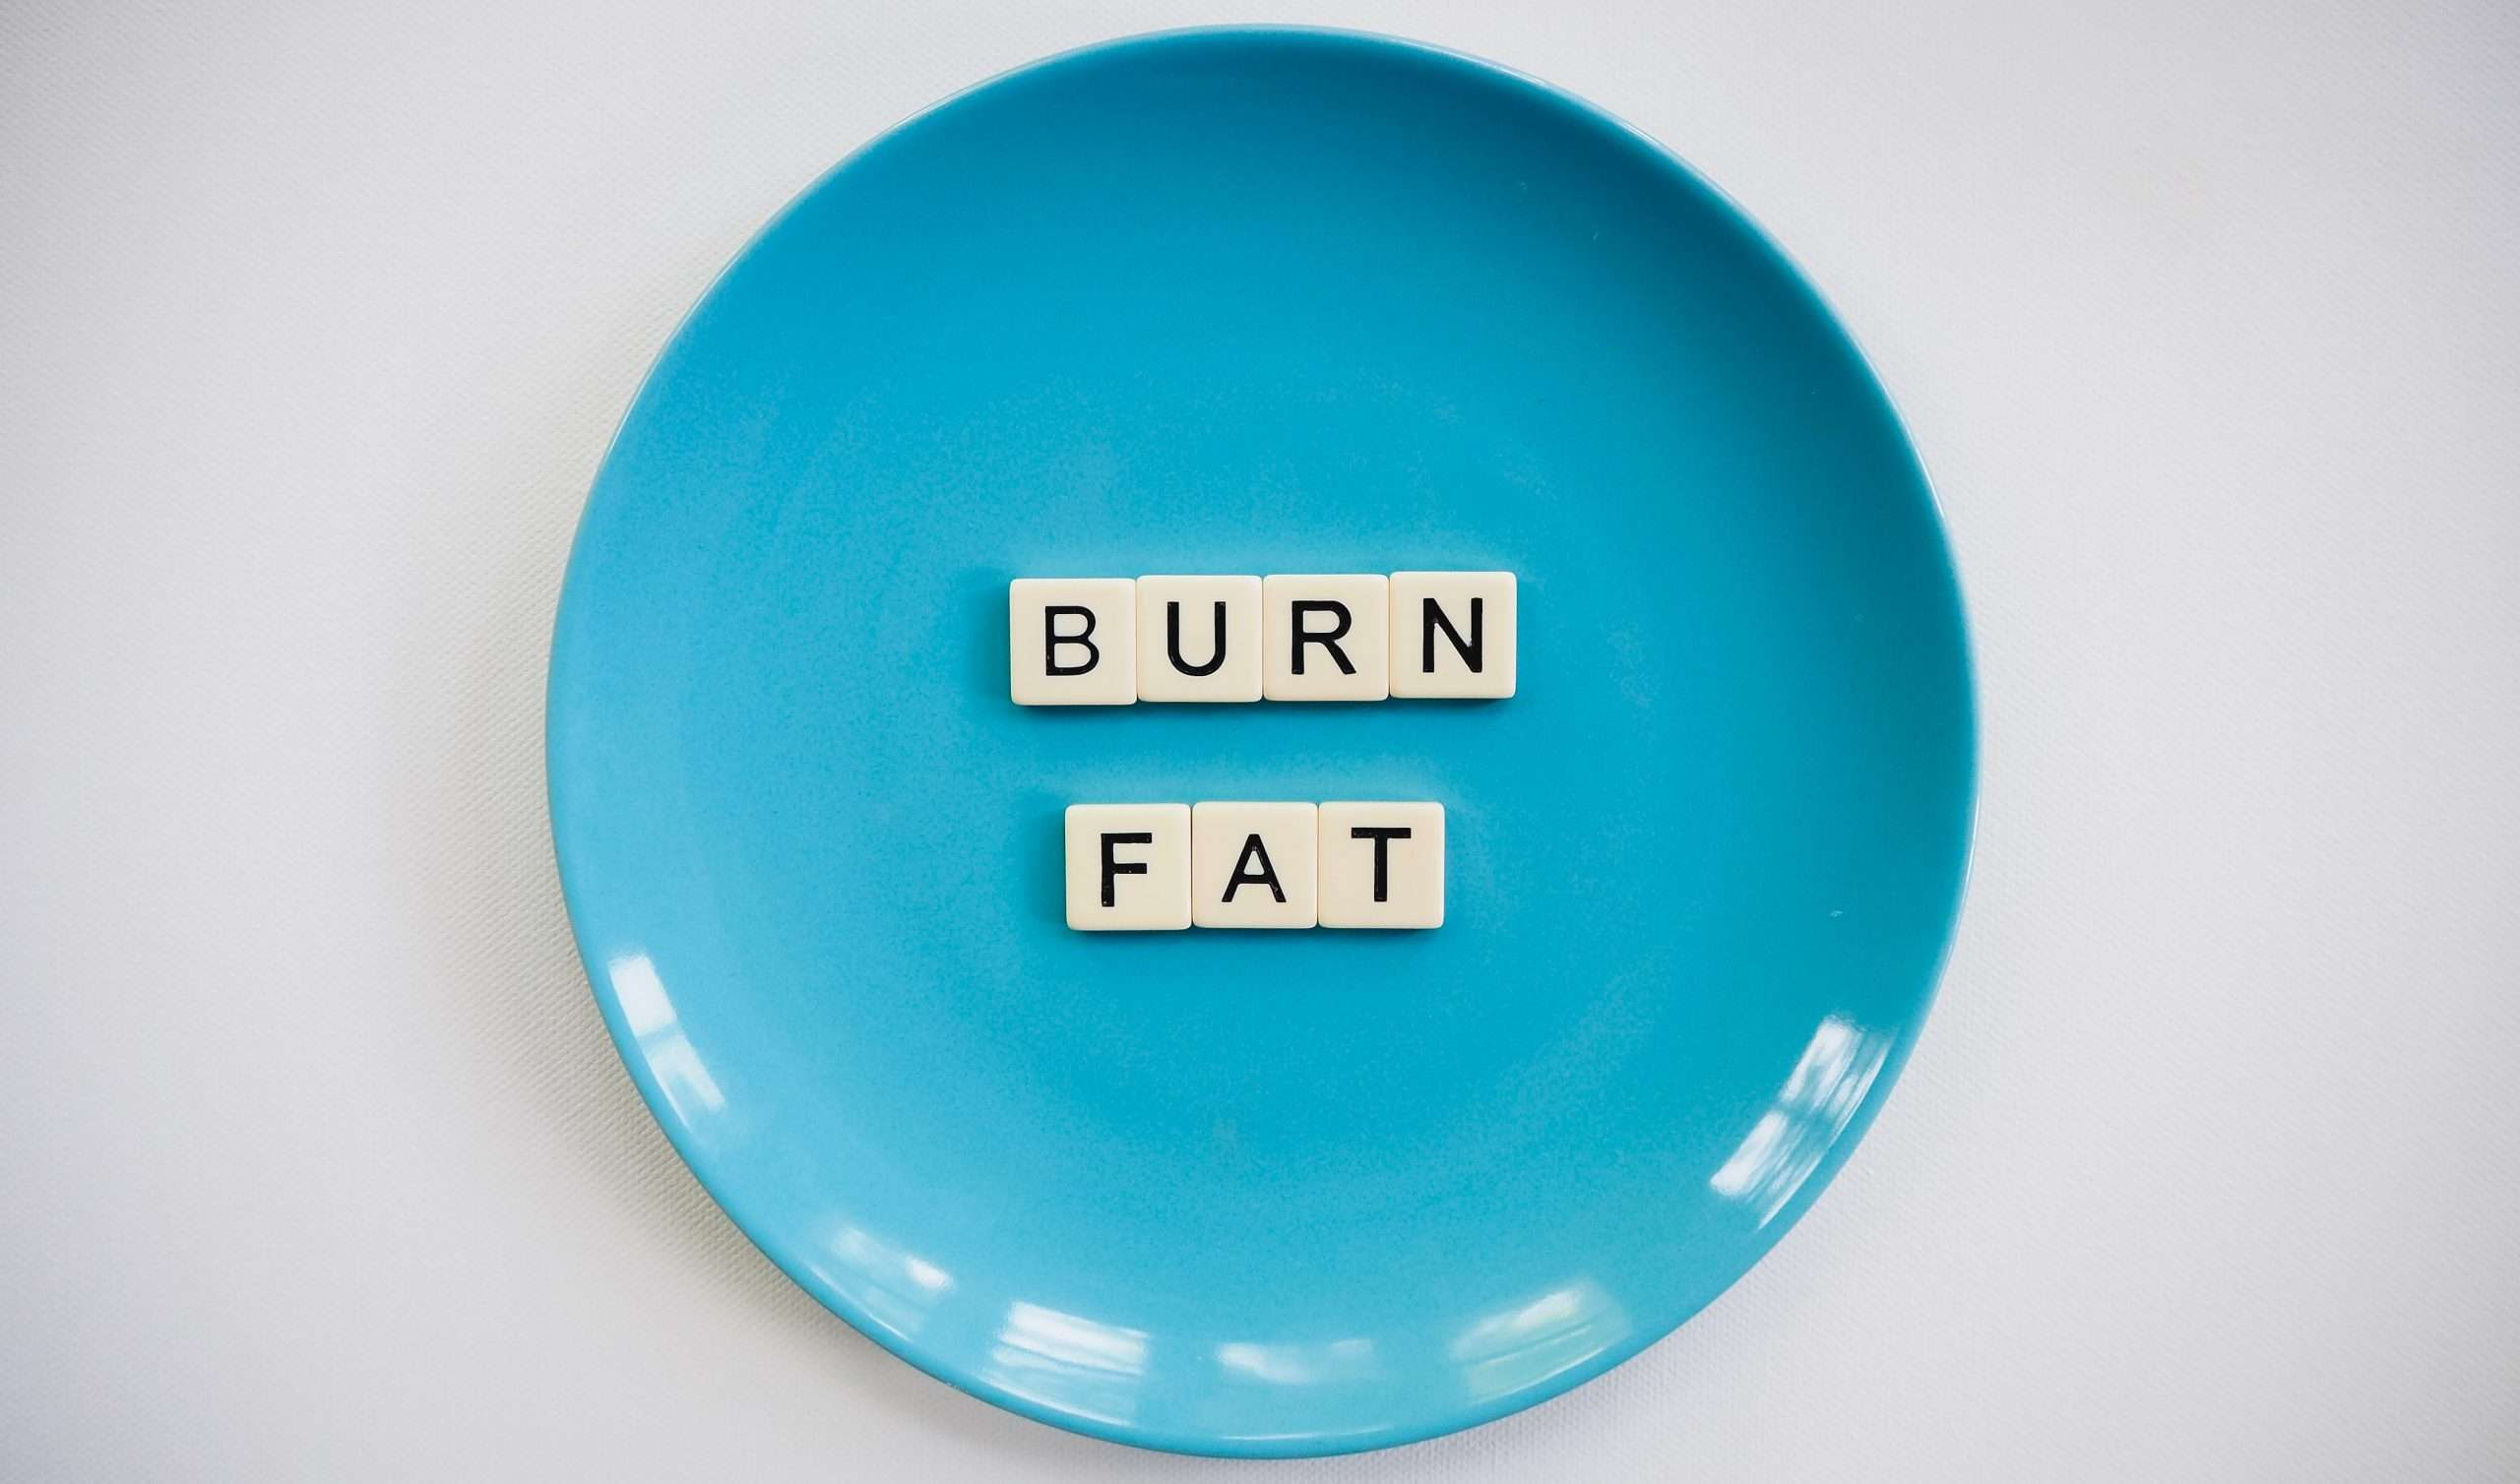 How To Lose Weight Fast Simple Steps Based On Science